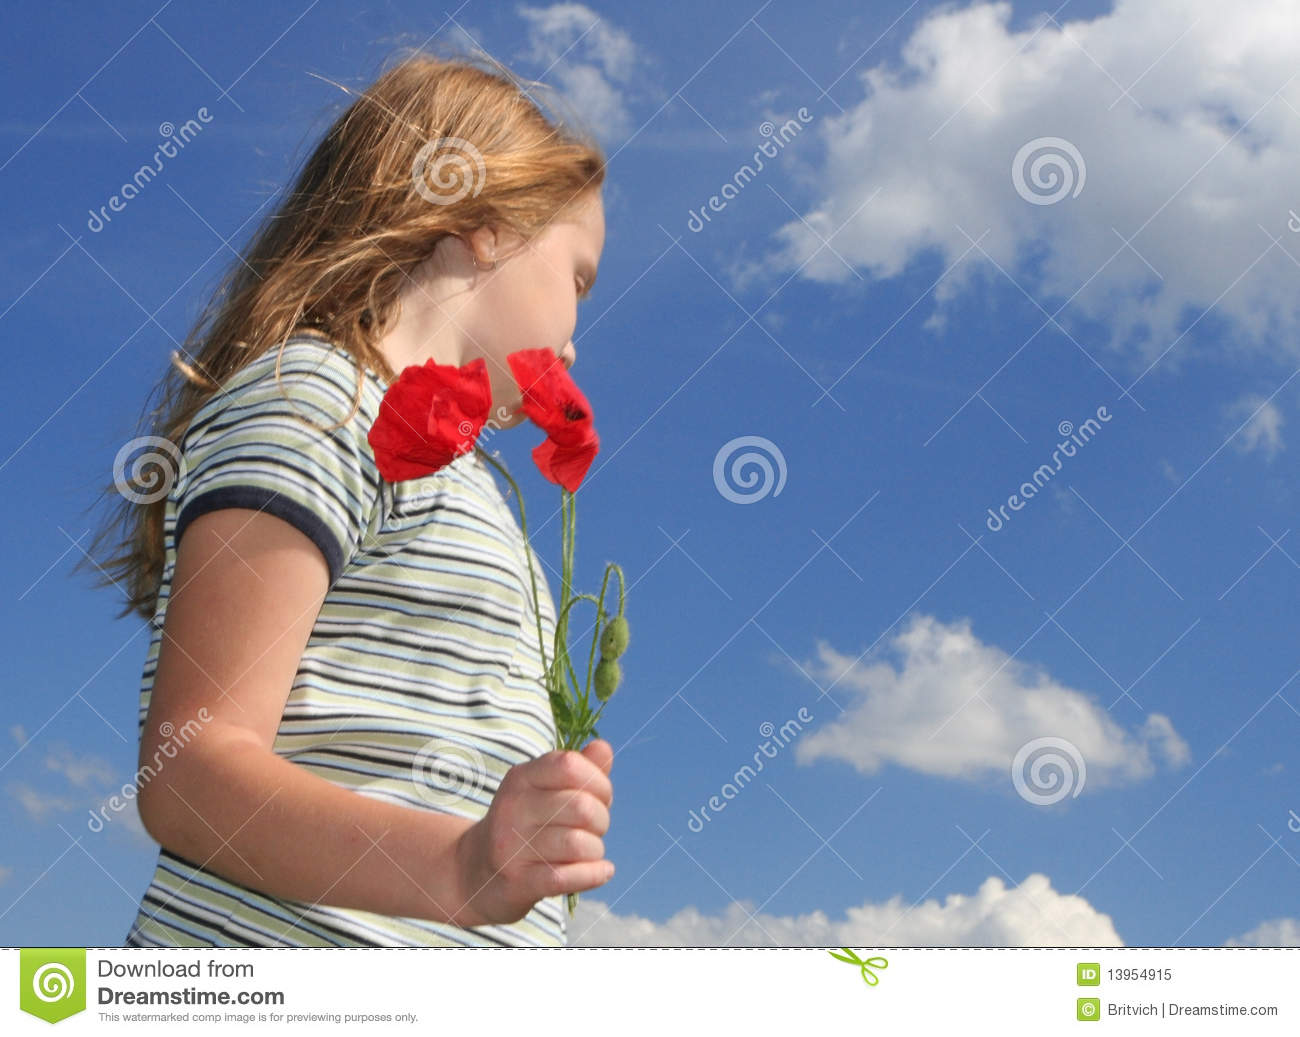 Girl with poppies over sky